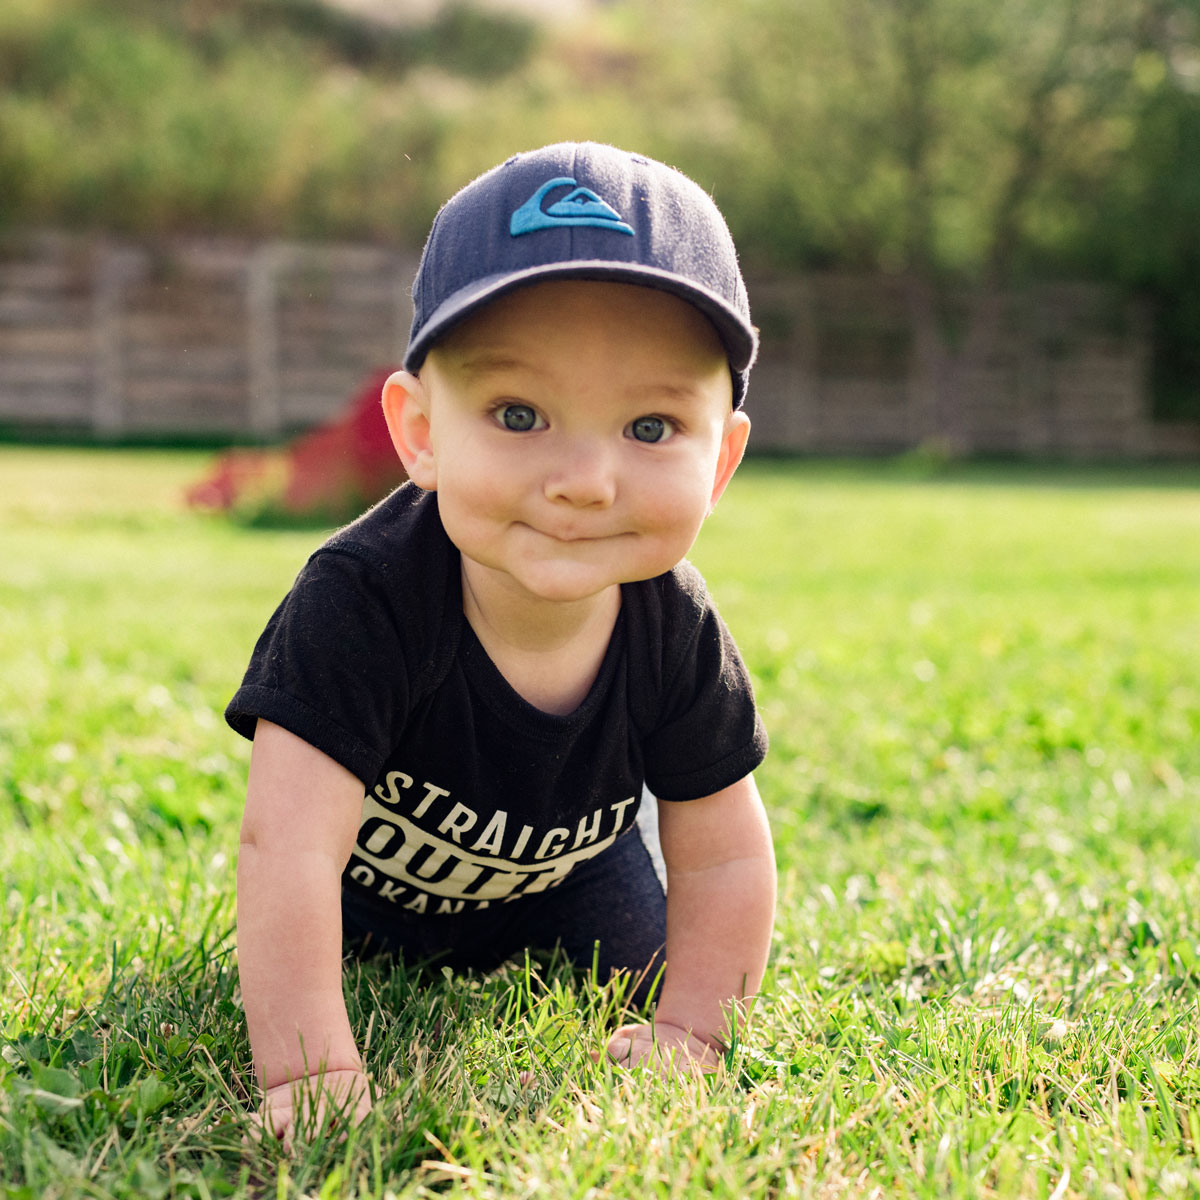 Black Straight Outta the Okanagan baby onsie - 351 Apparel